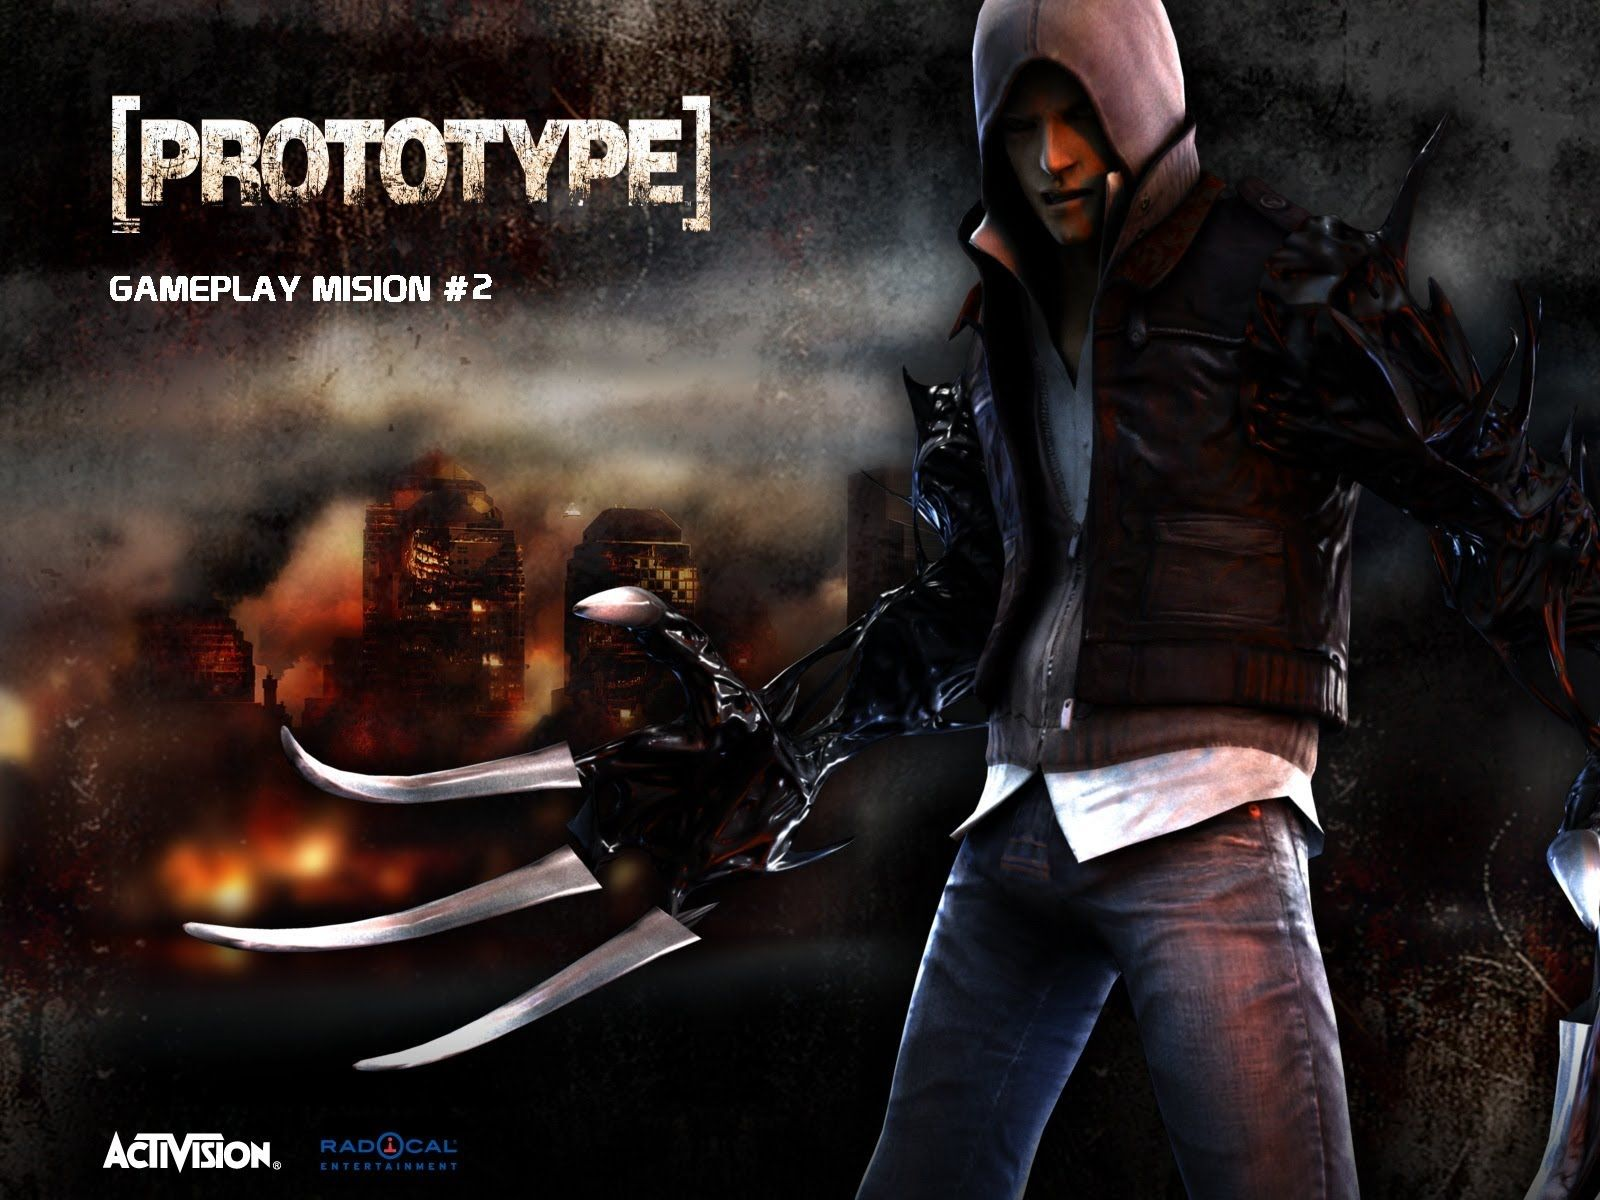 prototype gameplay mision 2 | gameplays | pinterest